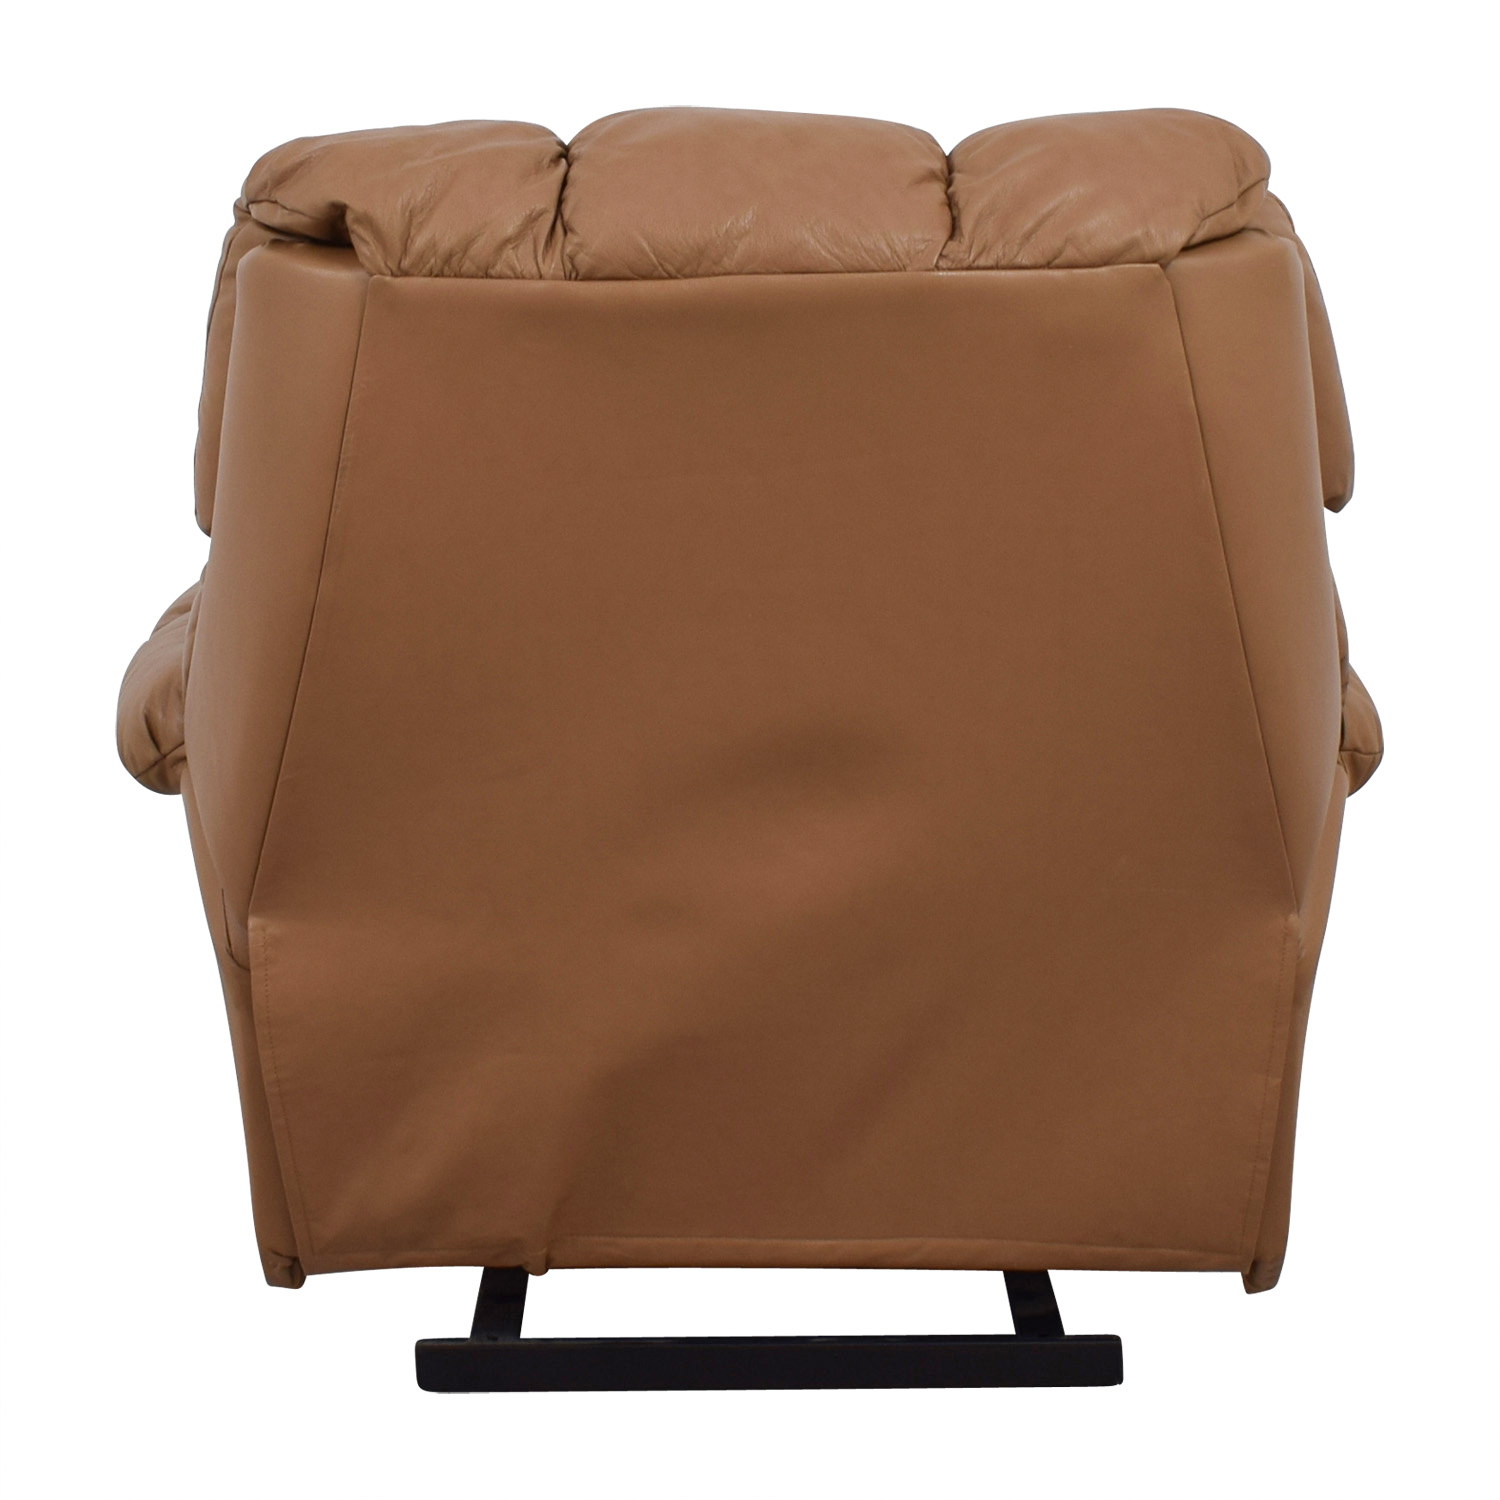 buy Tan Leather Reclining Chair